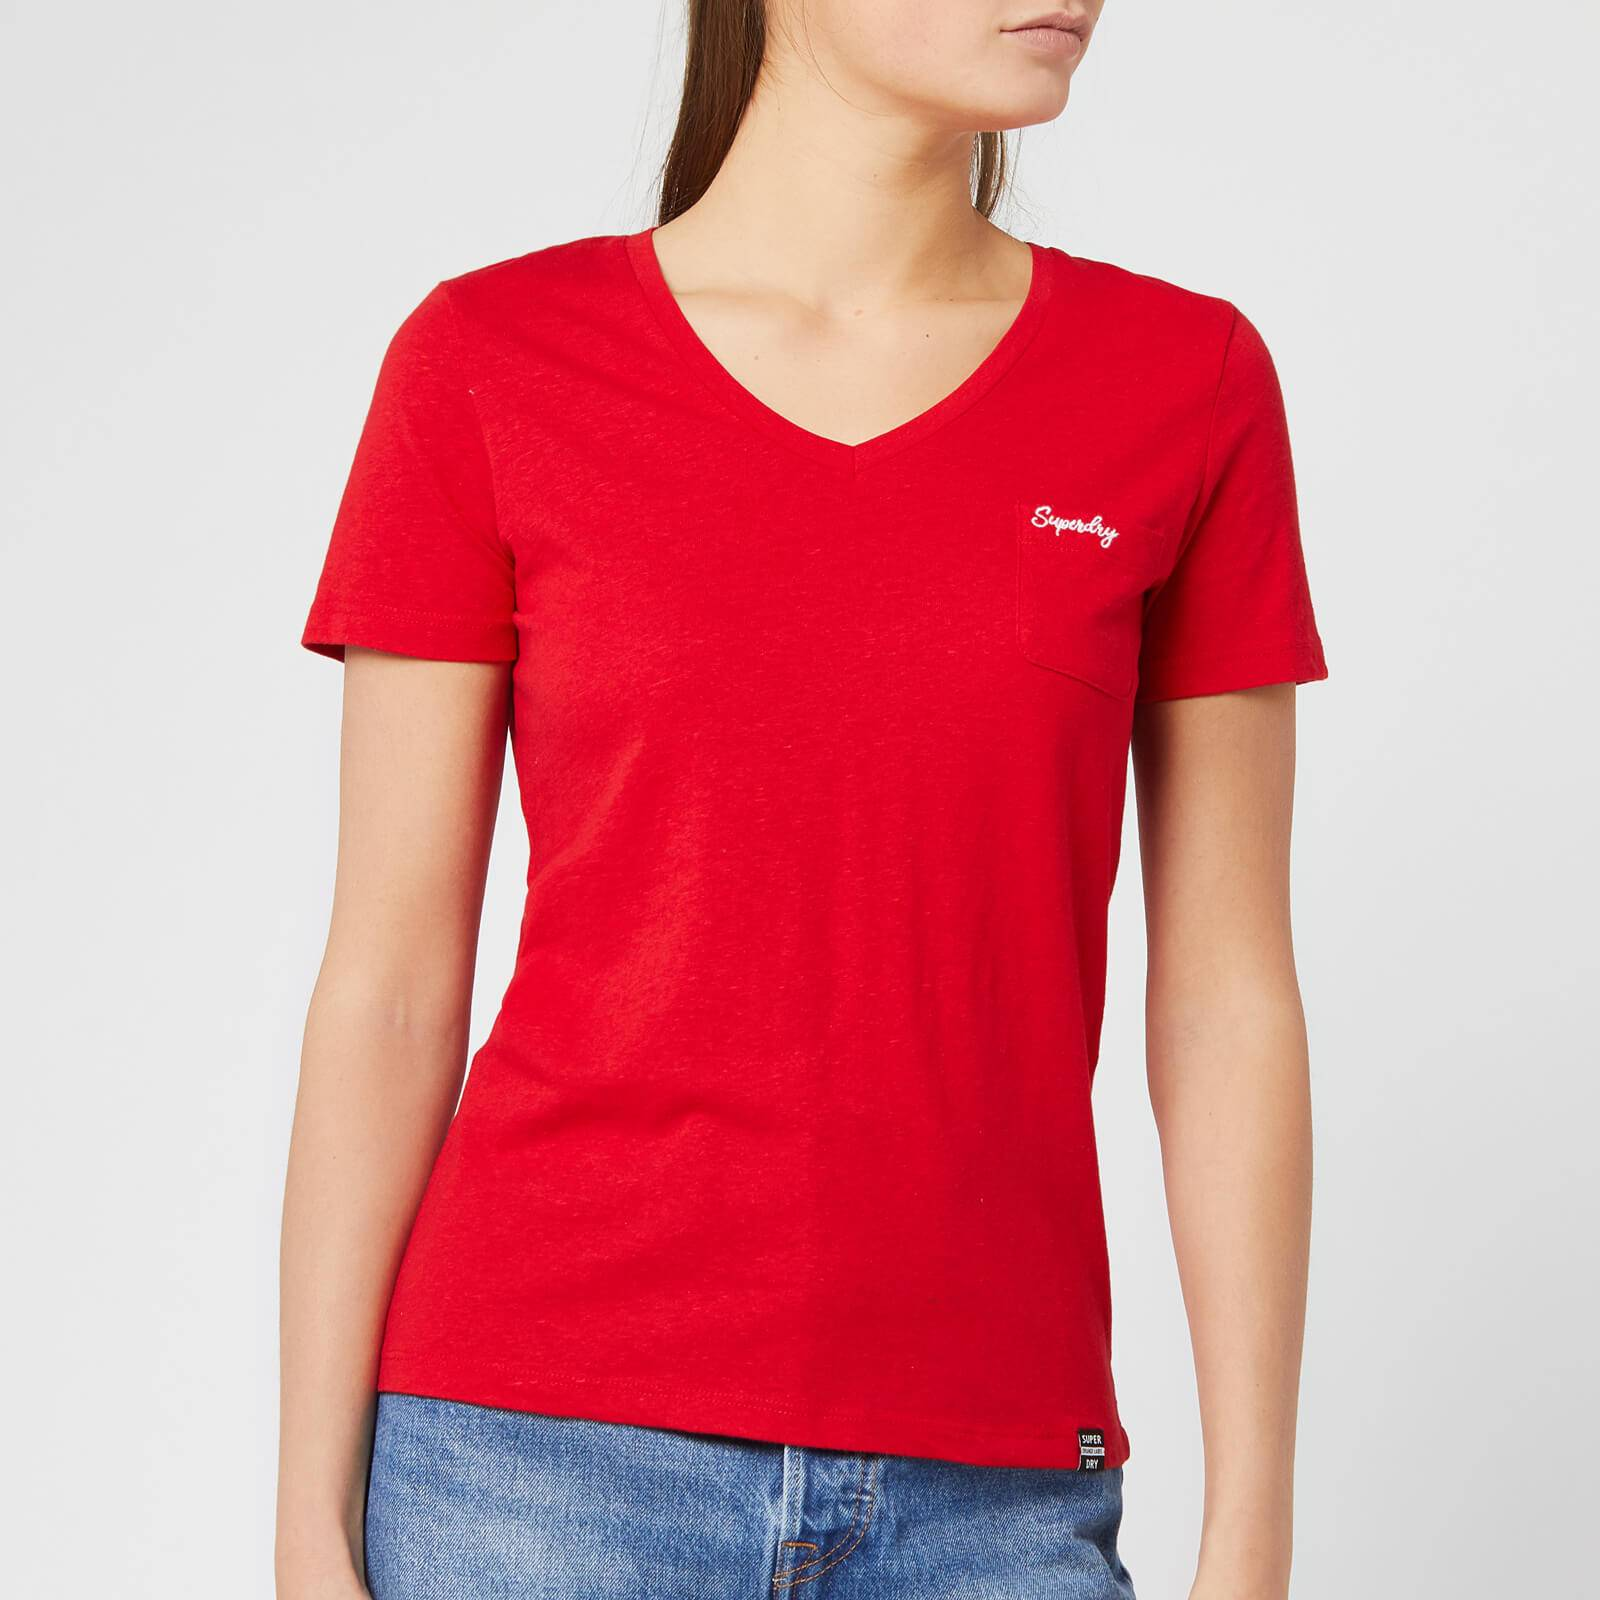 Superdry Women's Ol Essential Vee T-Shirt - Rouge Red - UK 12 - Red